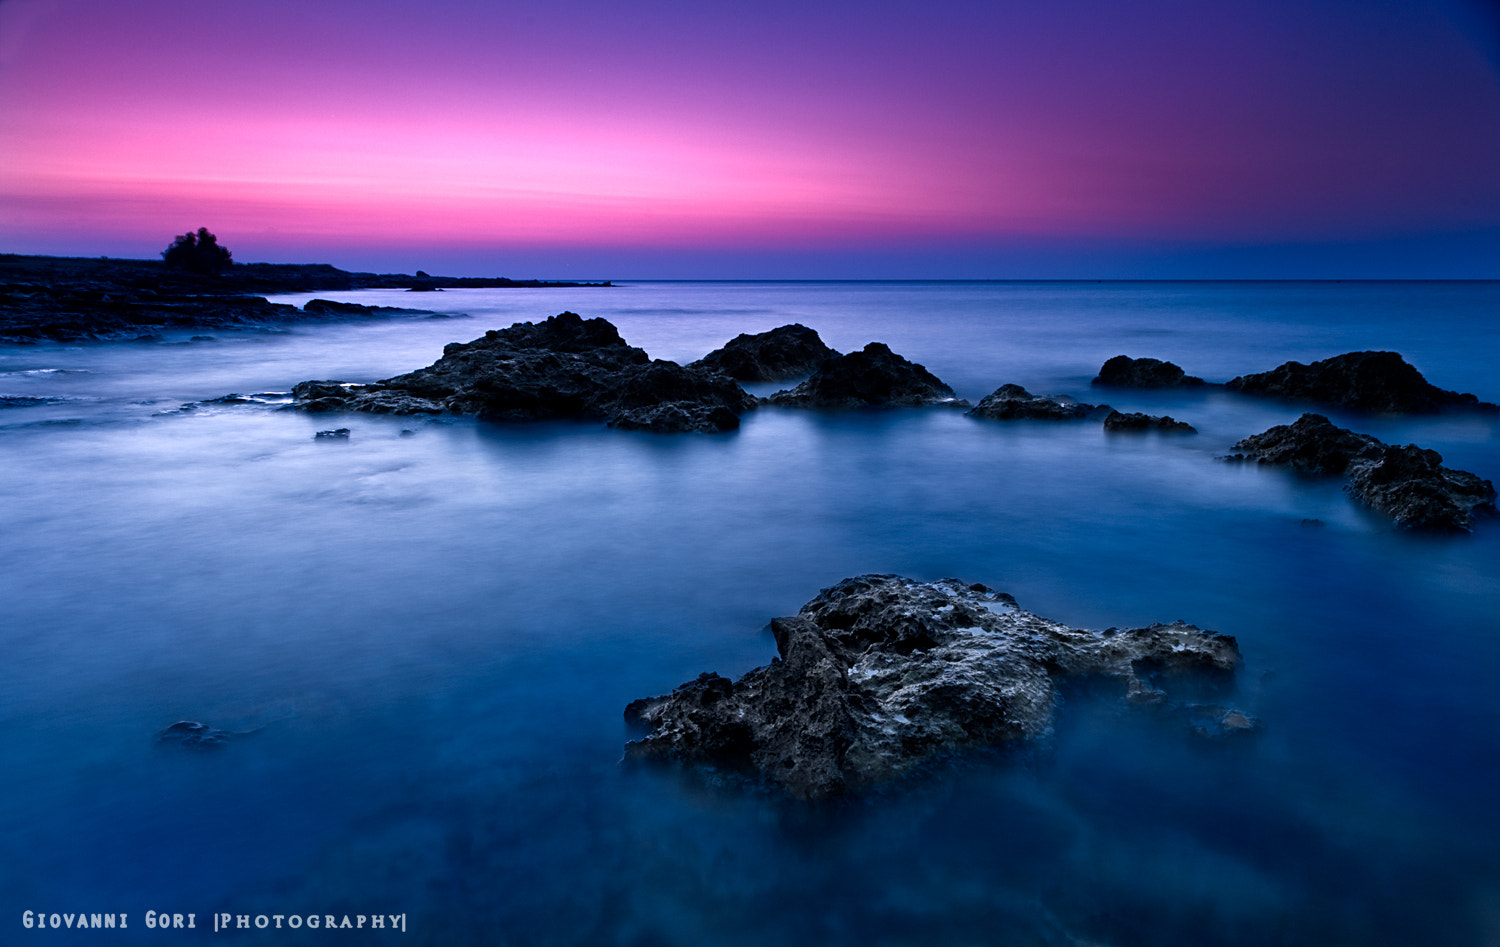 Photograph ..and the night gives way to the day by Giovanni Gori on 500px